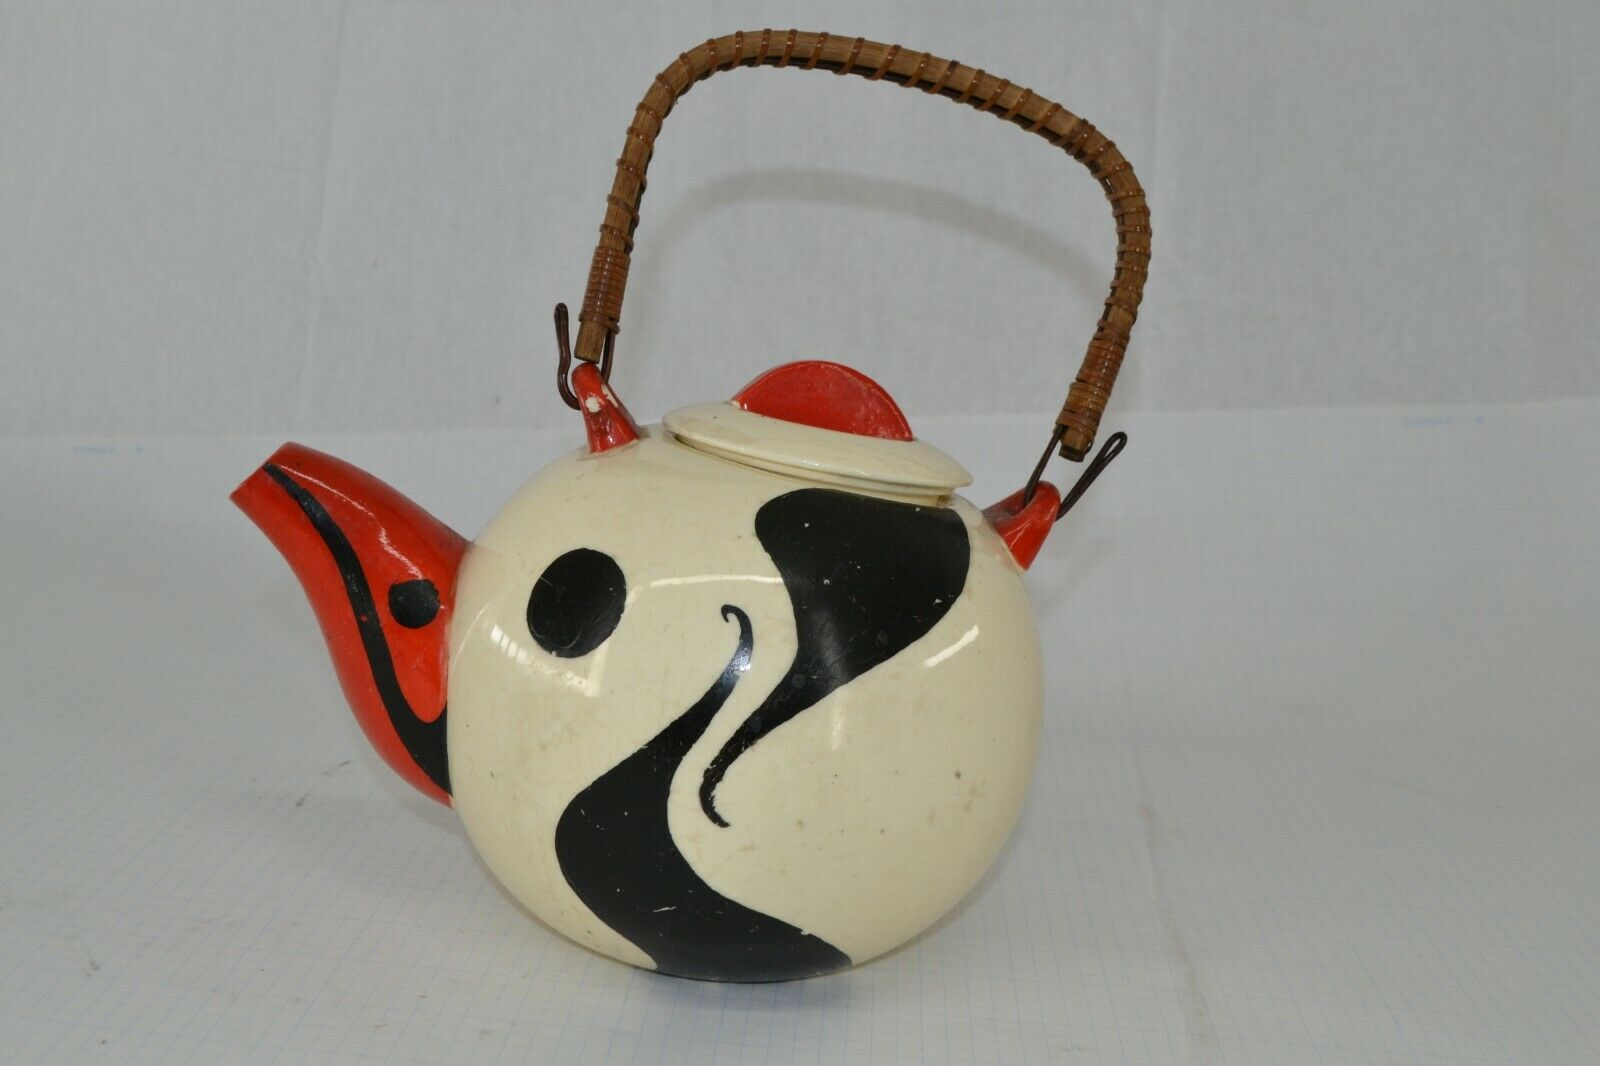 Vintage Moderne Art céramique pot de thé MADE IN JAPAN